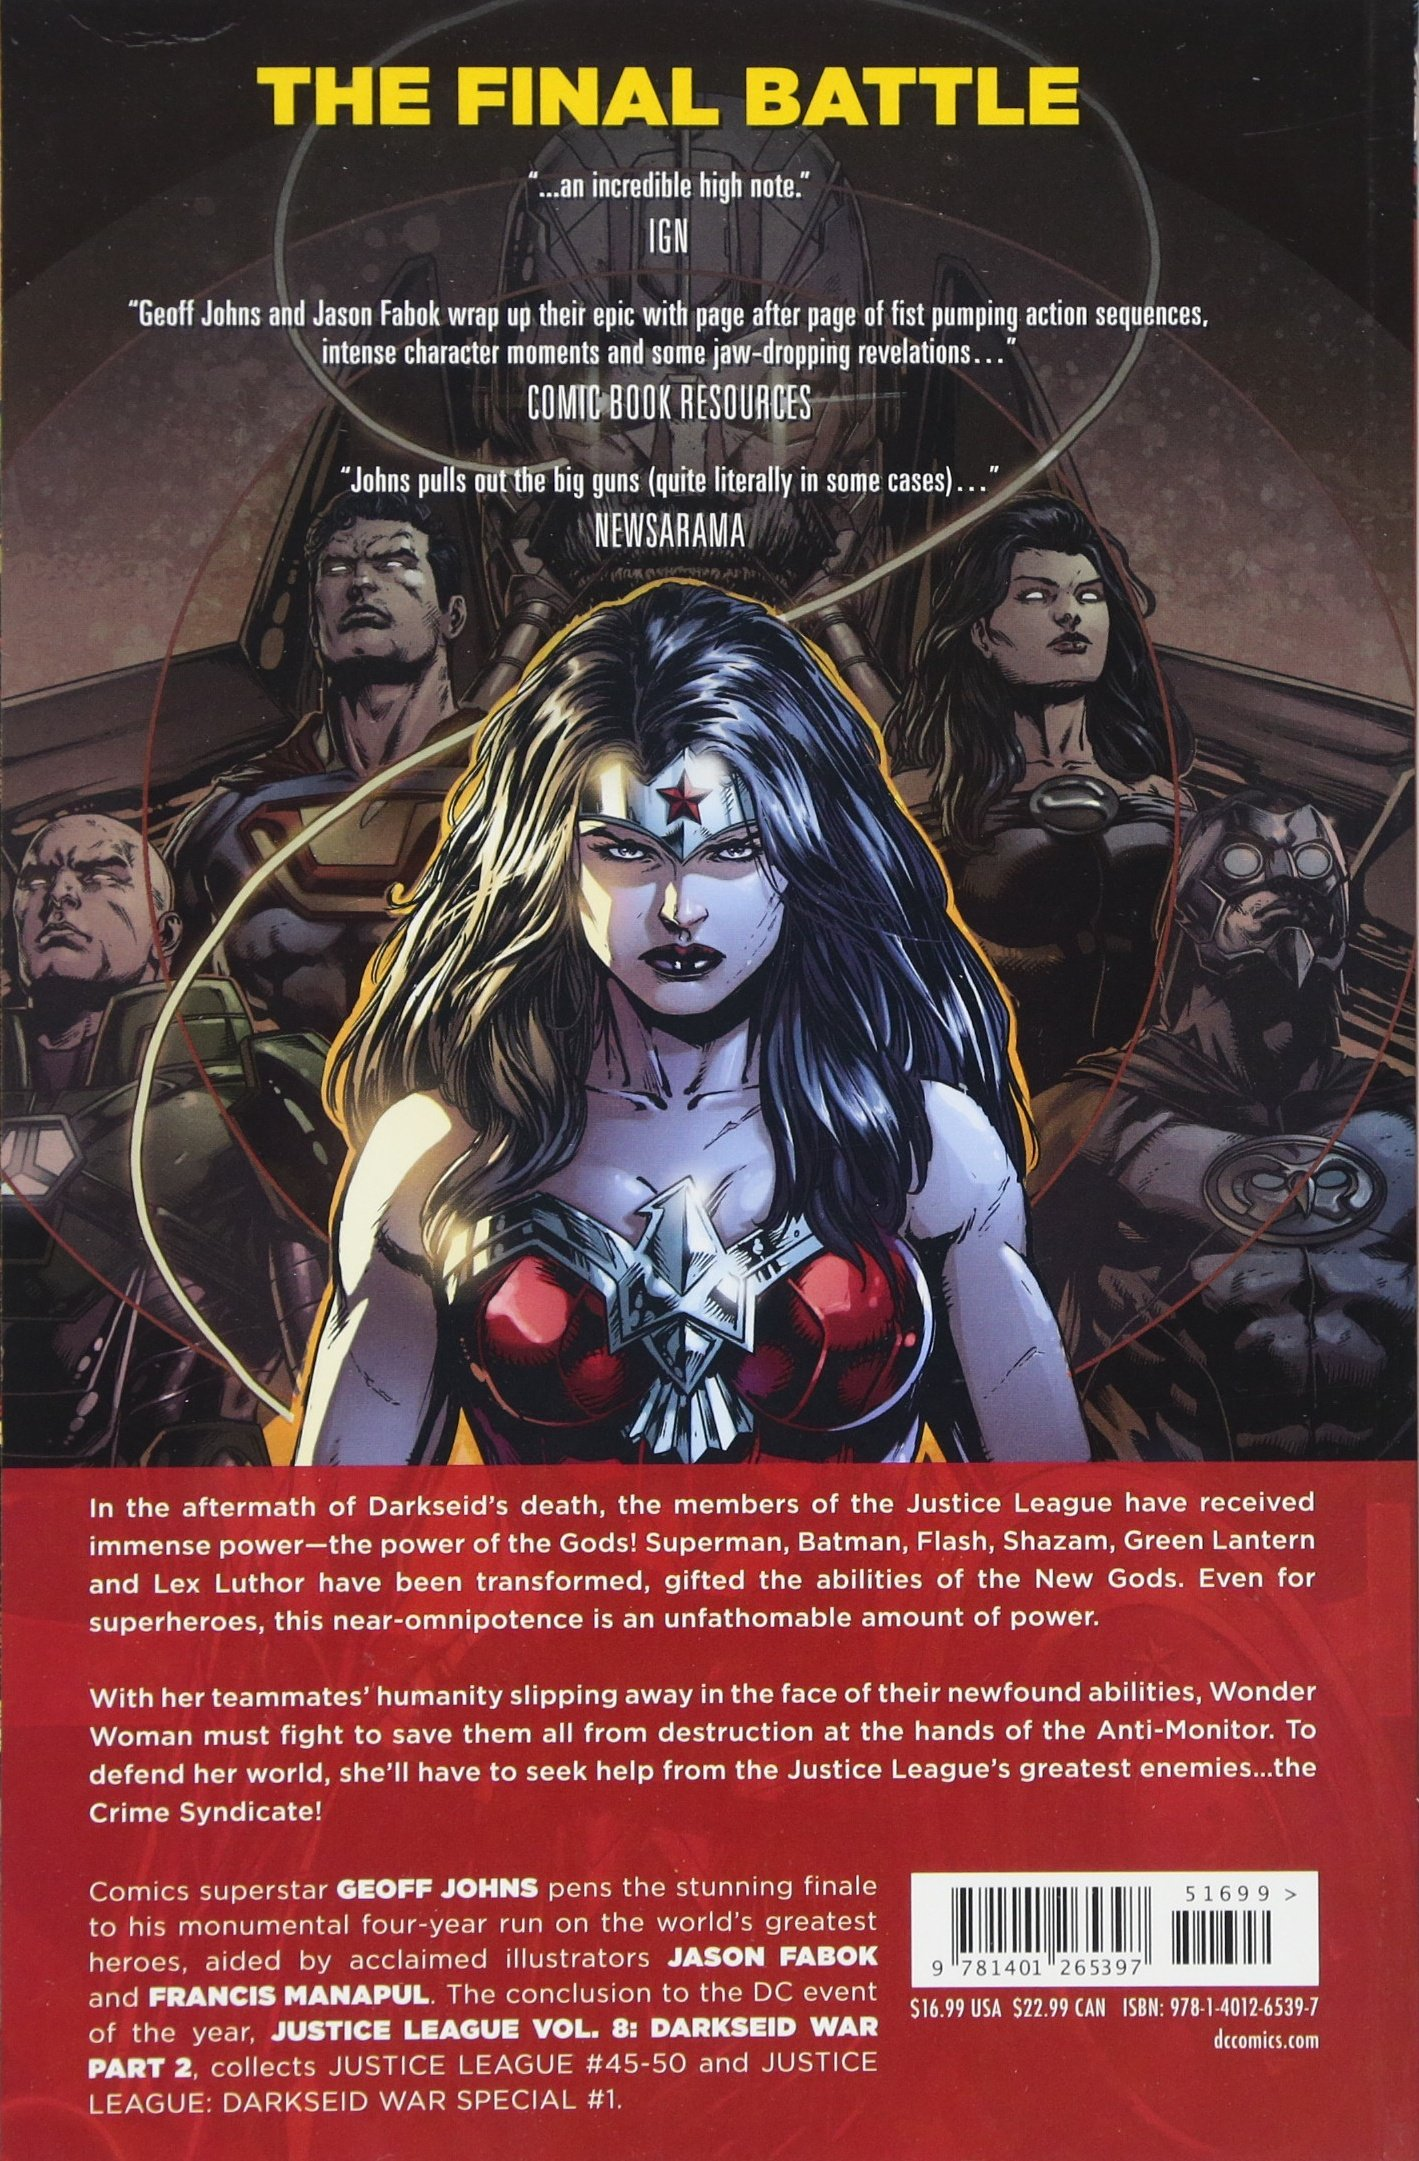 Justice League Vol  8: Darkseid War Part 2: Geoff Johns, Jason Fabok